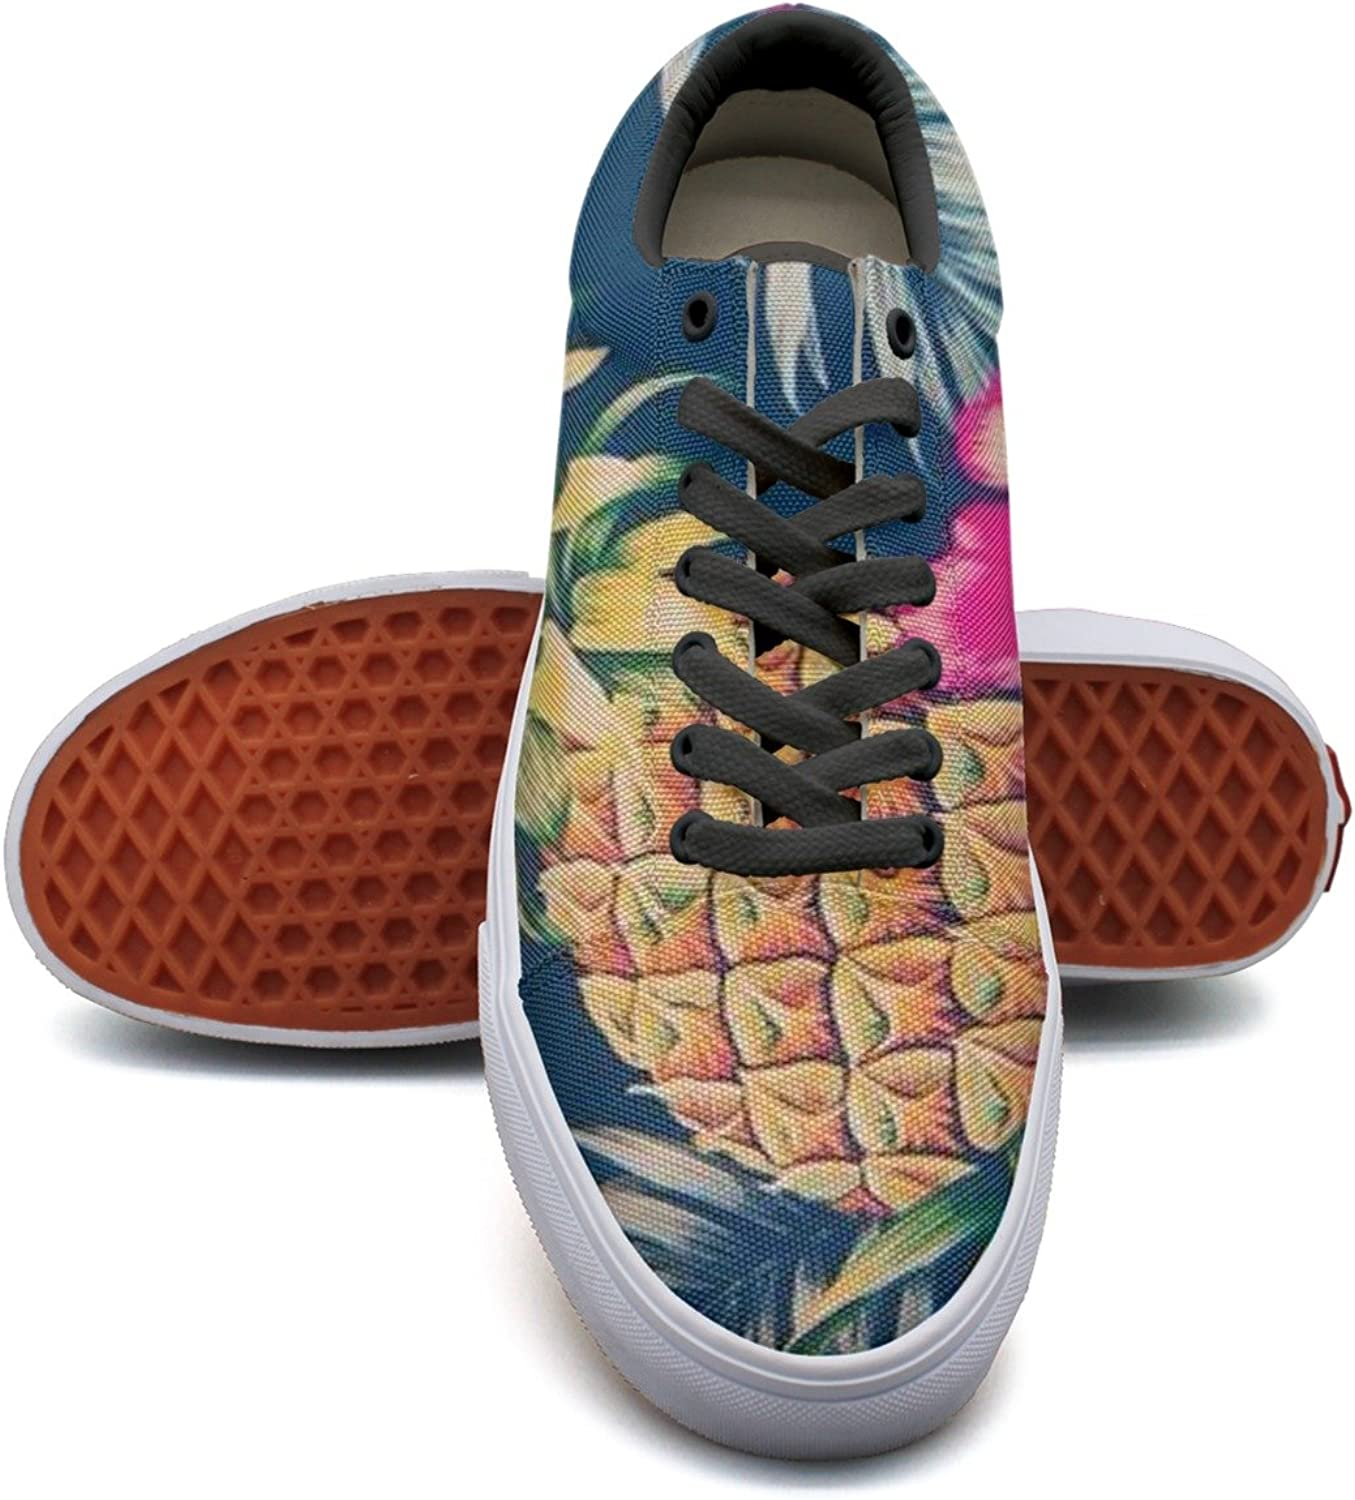 Pineapple And Floral Women's Casual Sneakers Footwear Lo-Top News Trainers